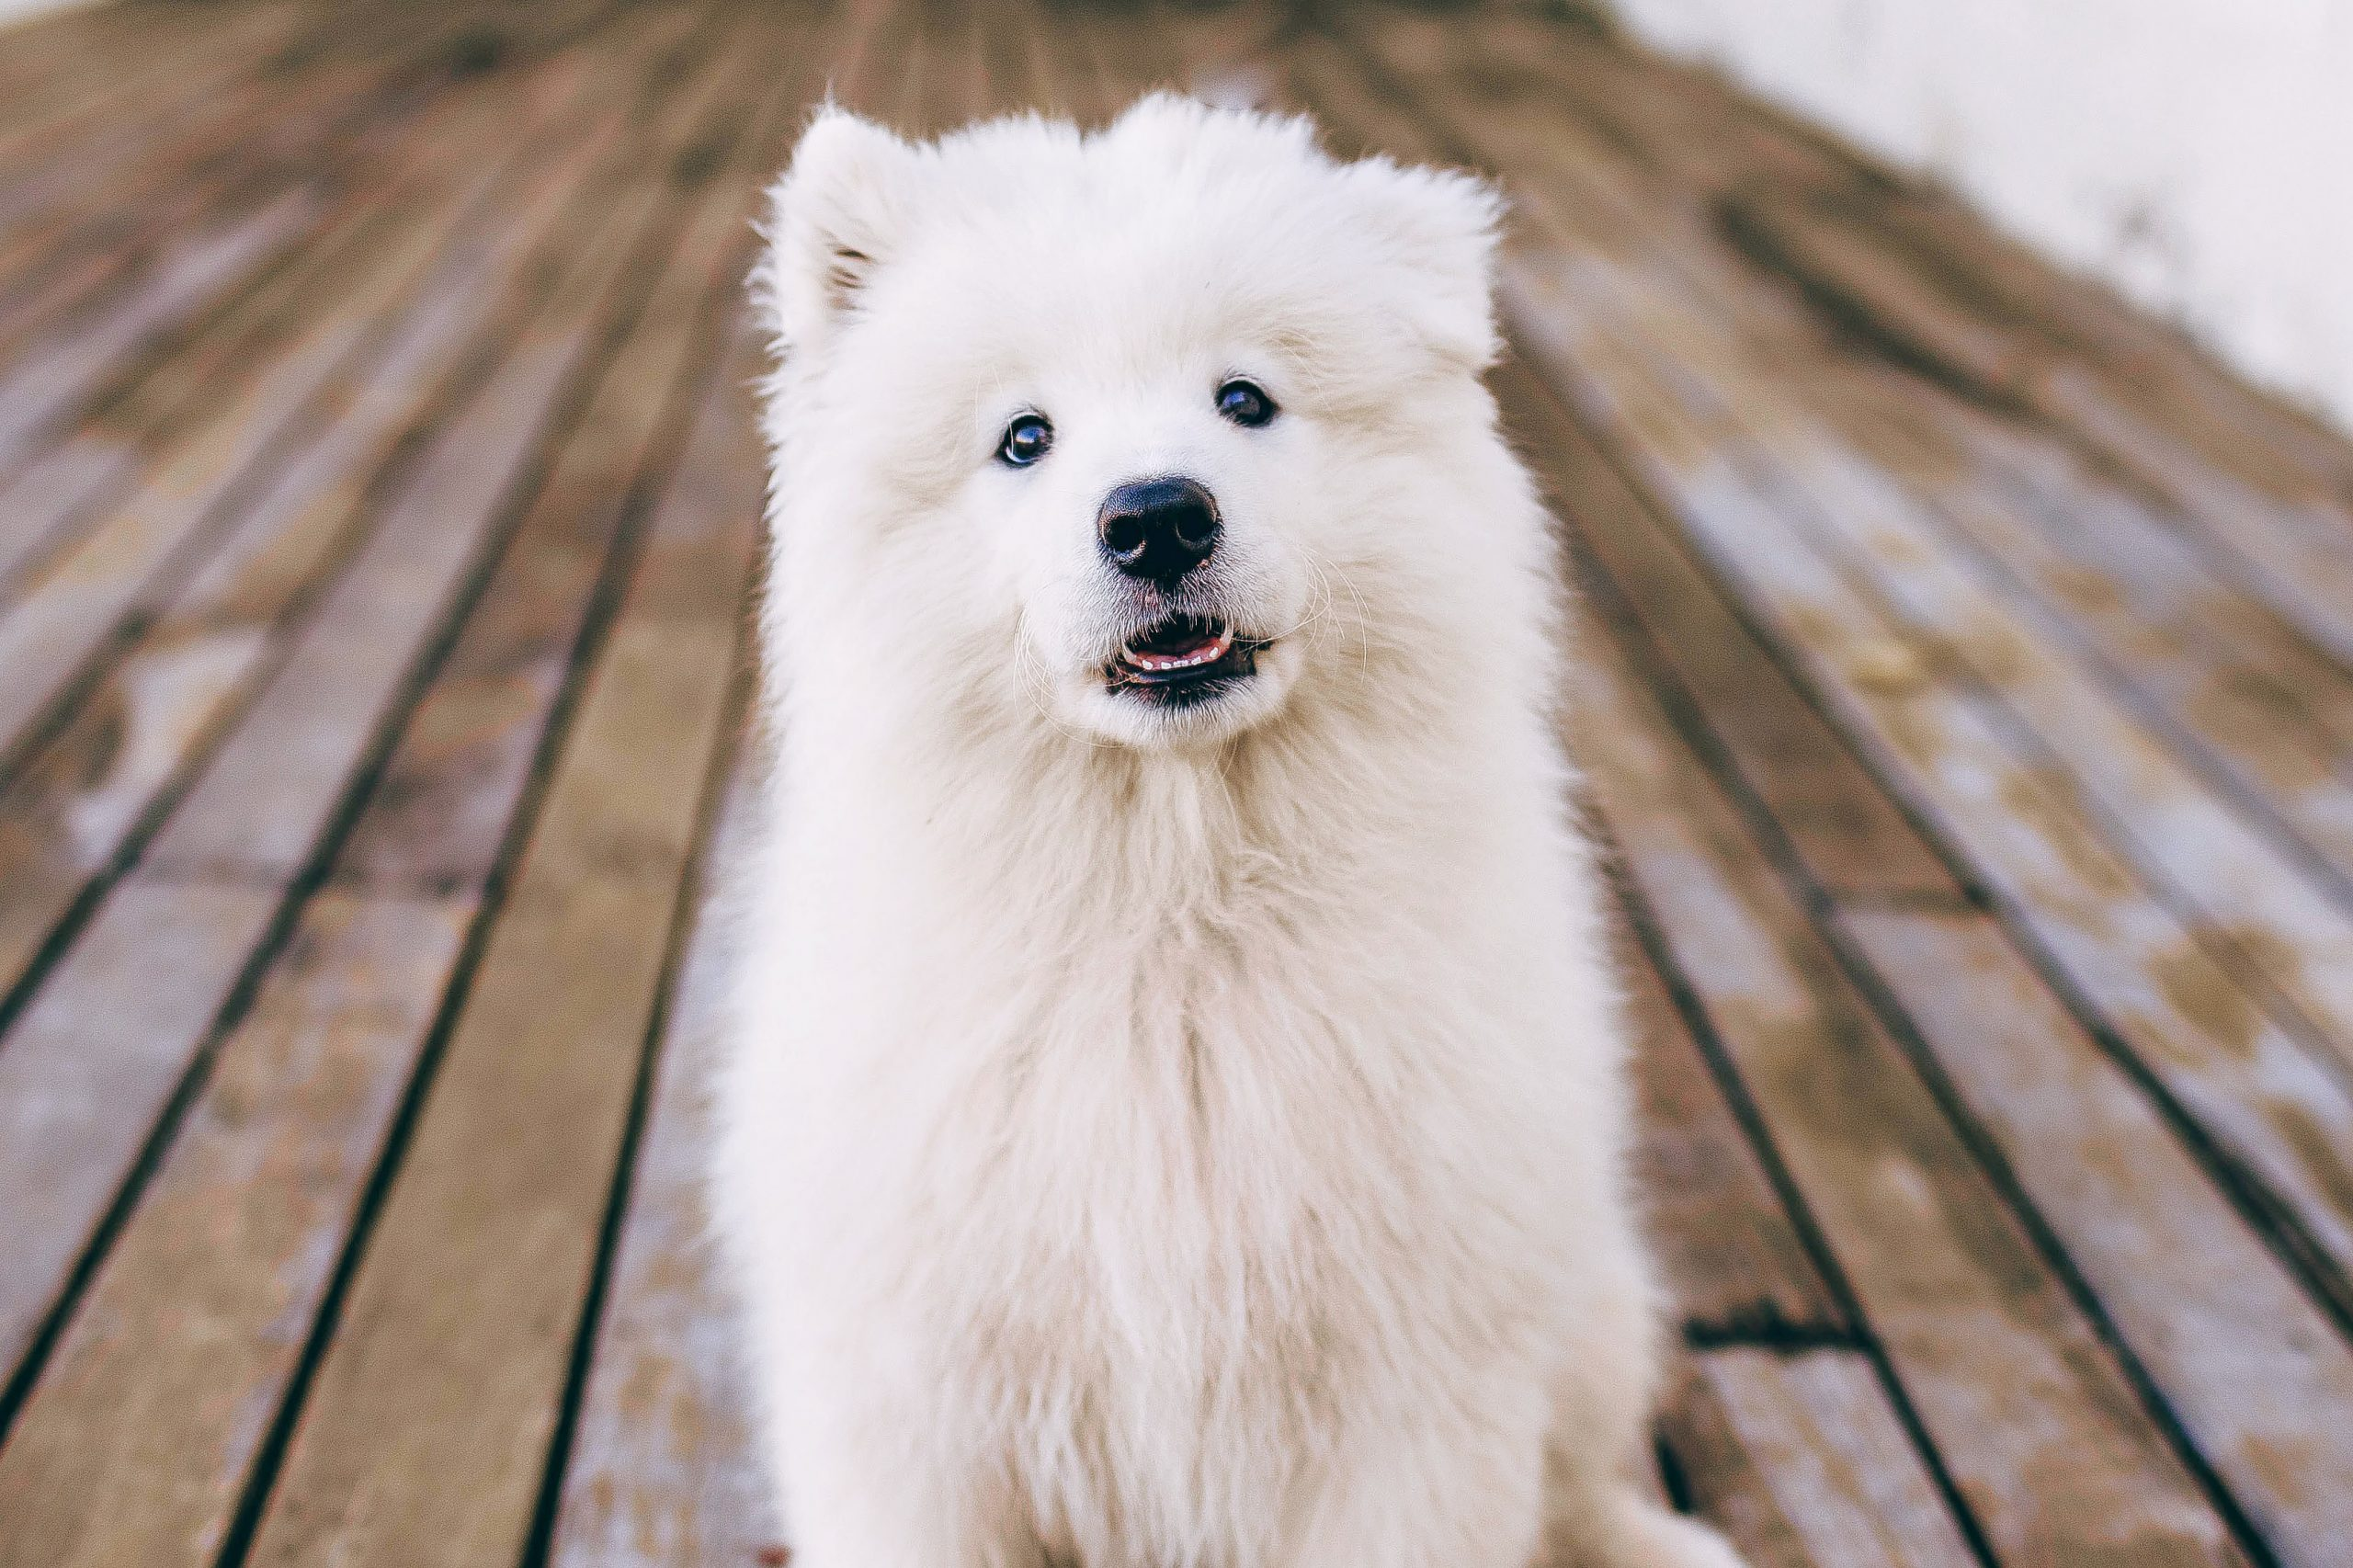 7 Best De-Shedding Tools for Dogs - Short, Medium and Long Coated Dogs